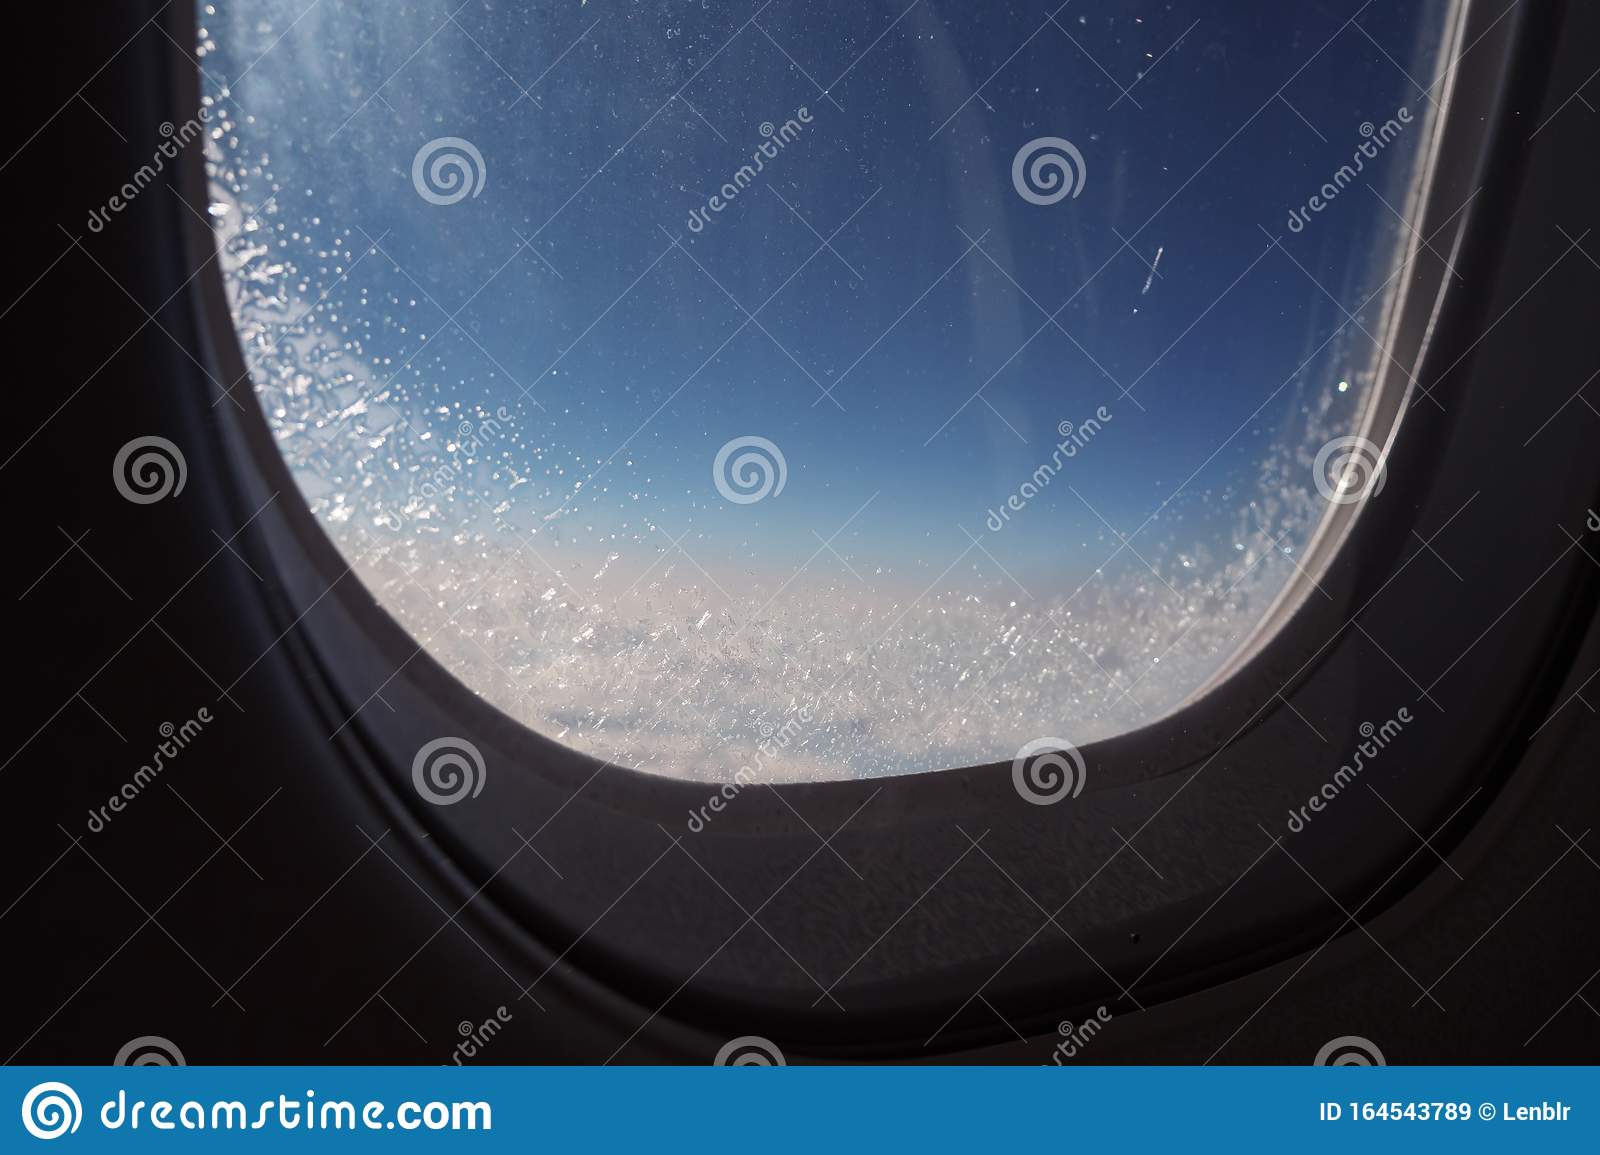 Frozen Window Inside Airplane Covered With Ice During Flight